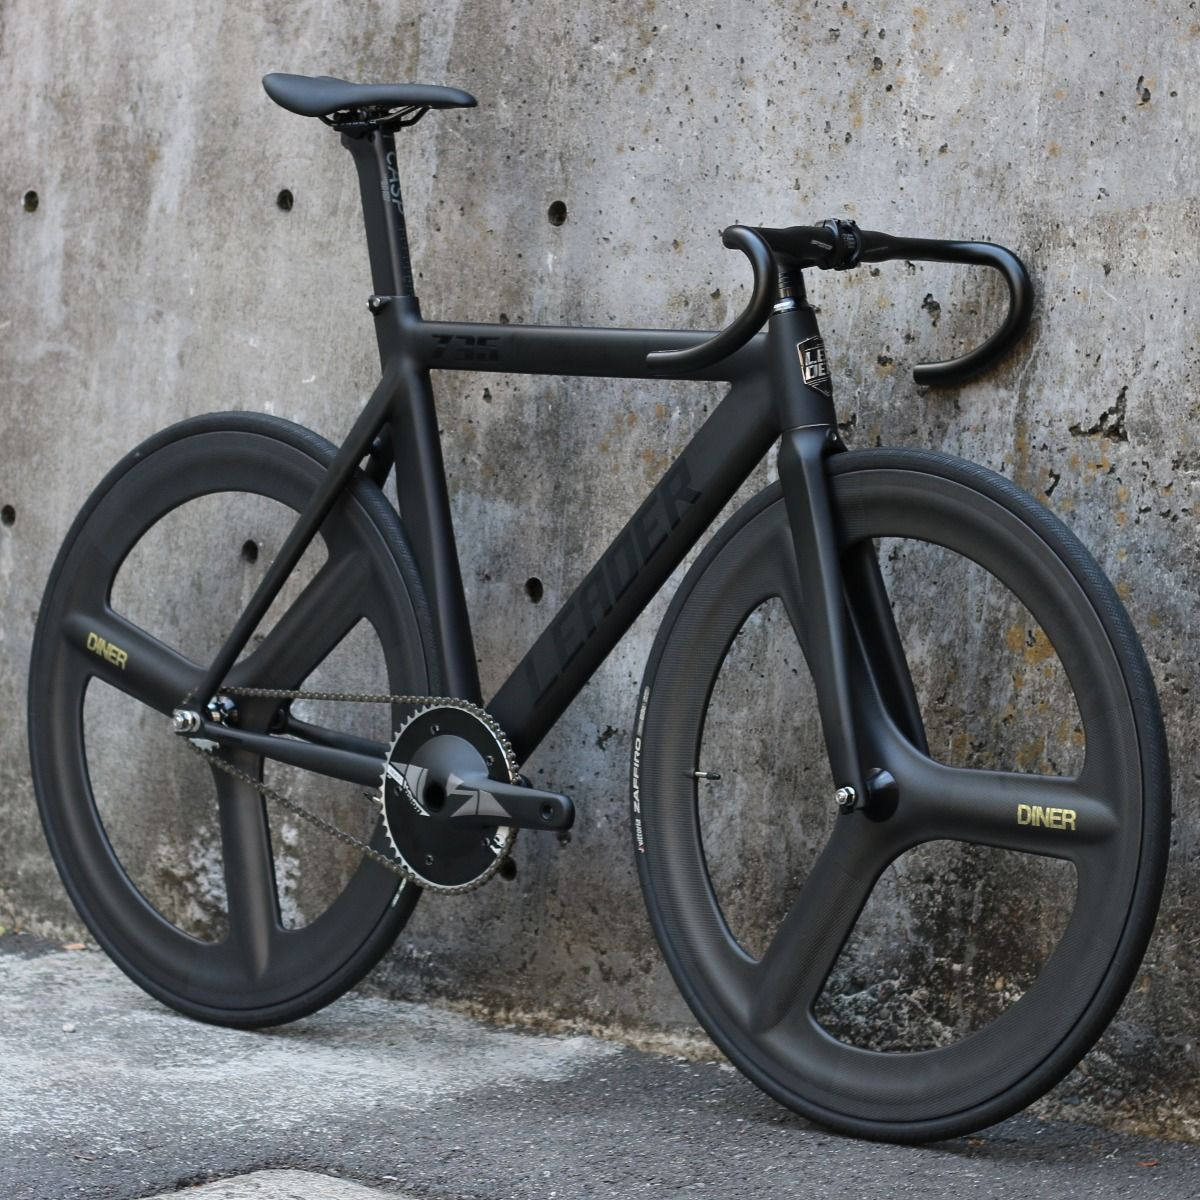 LEADER BIKE 735TR F&R 3SPOKE CARBON WHEEL CUSTOM